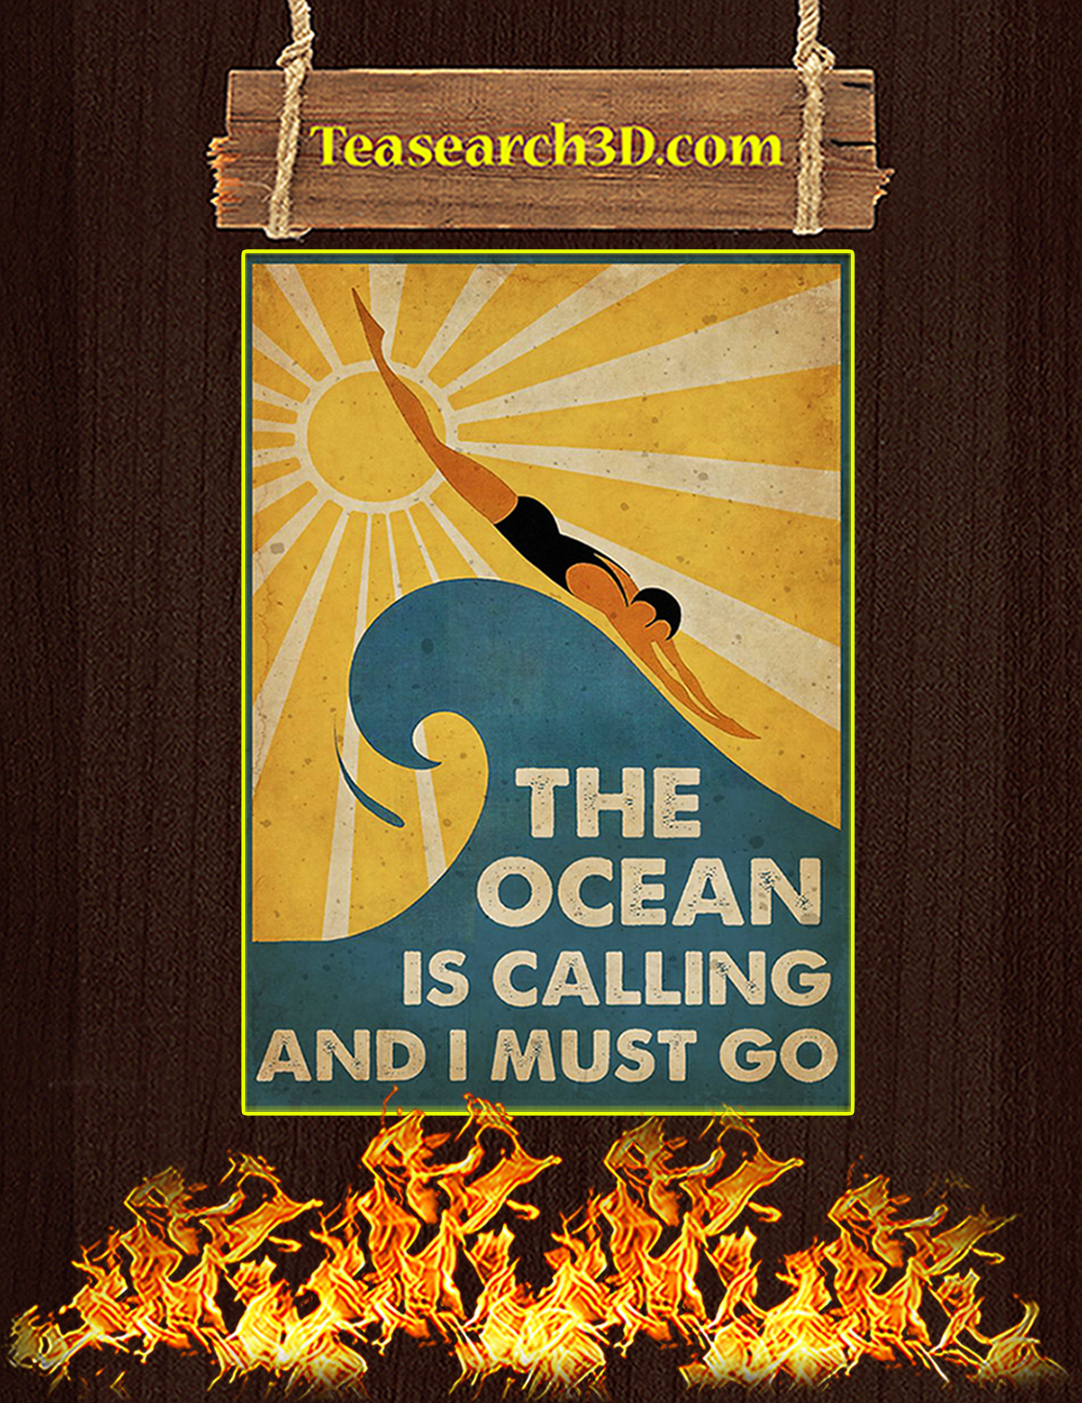 Swimming The ocean is calling and I must go poster A2